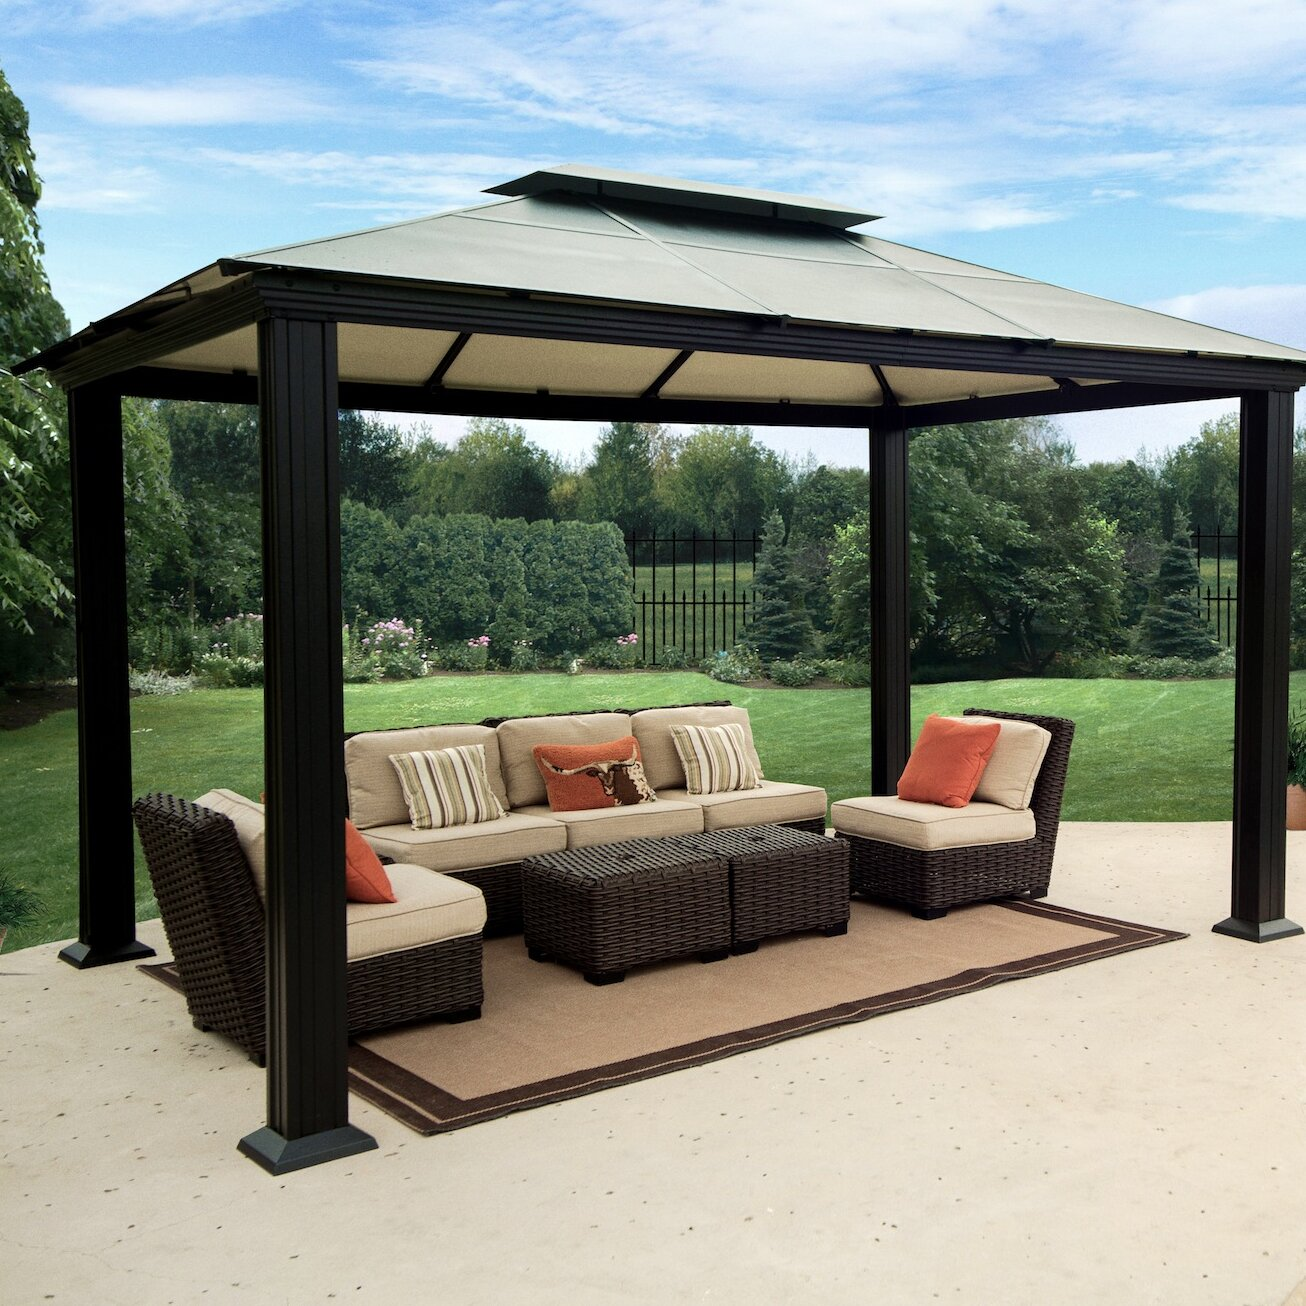 Magnificent Santa Monica Four Season 11 Ft W X 13 Ft D Metal Patio Gazebo Interior Design Ideas Tzicisoteloinfo